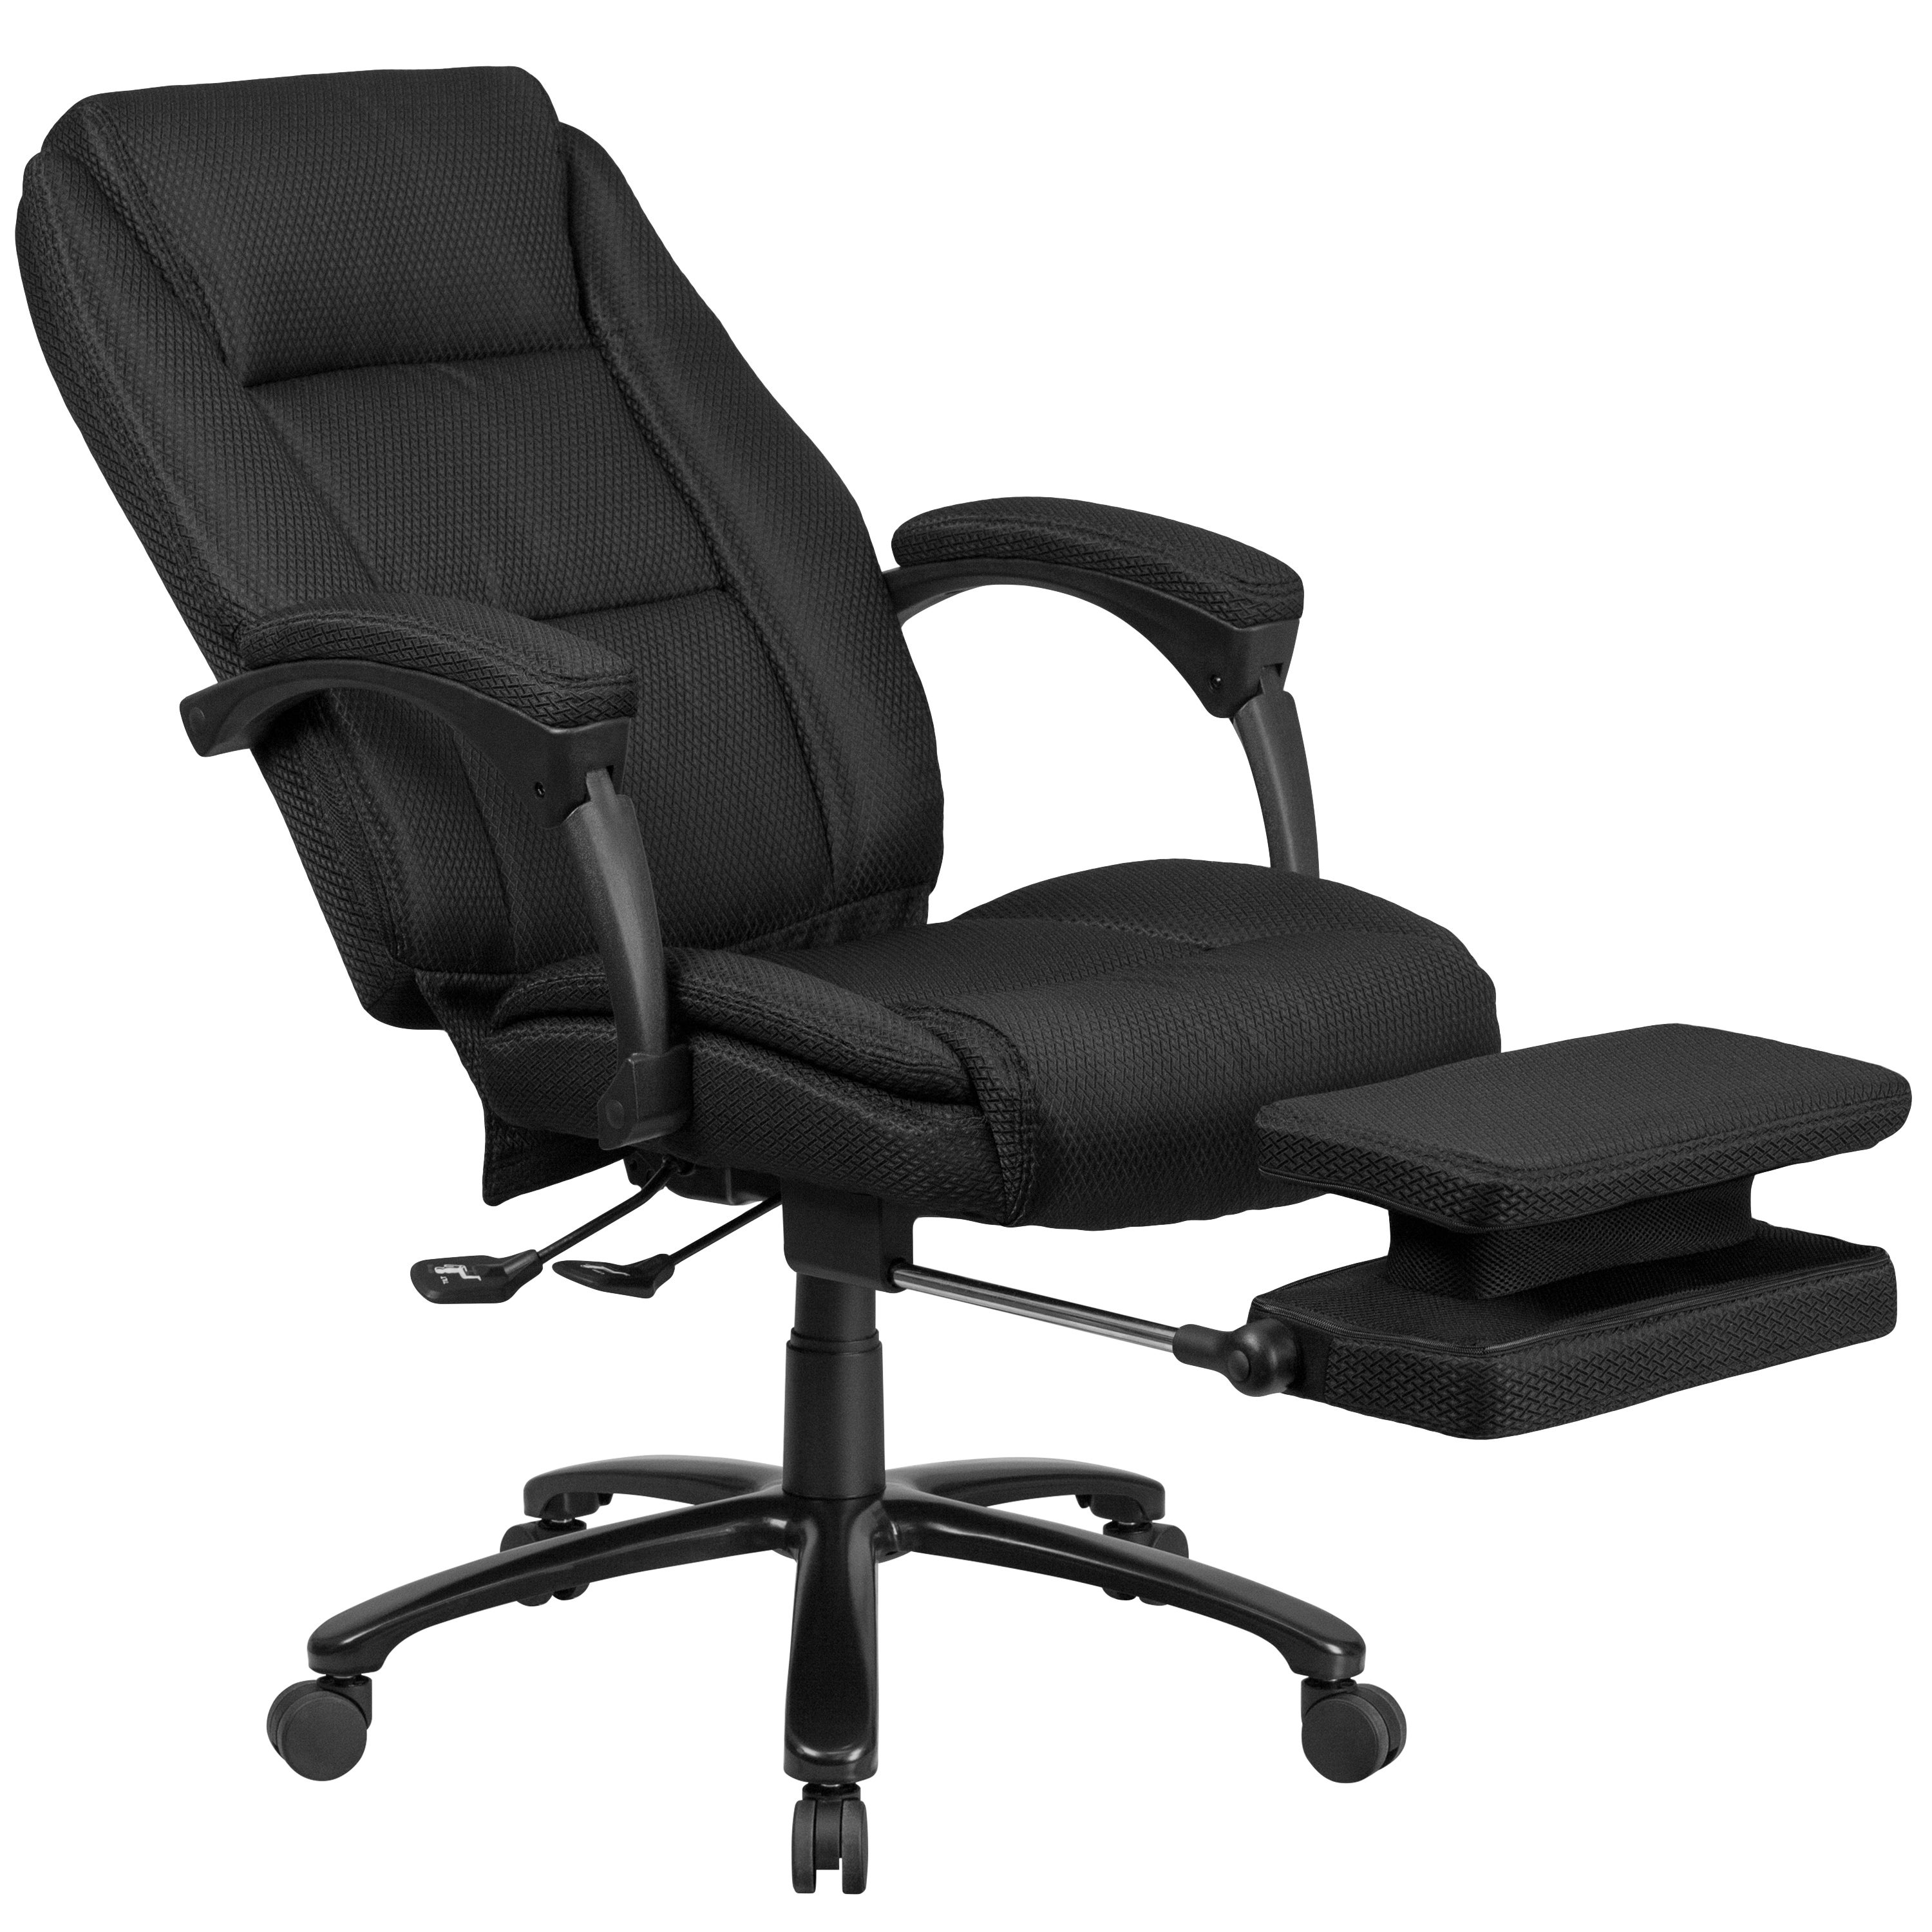 Multifunction Reclining Black Fabric High Back Executive Swivel Office Chair